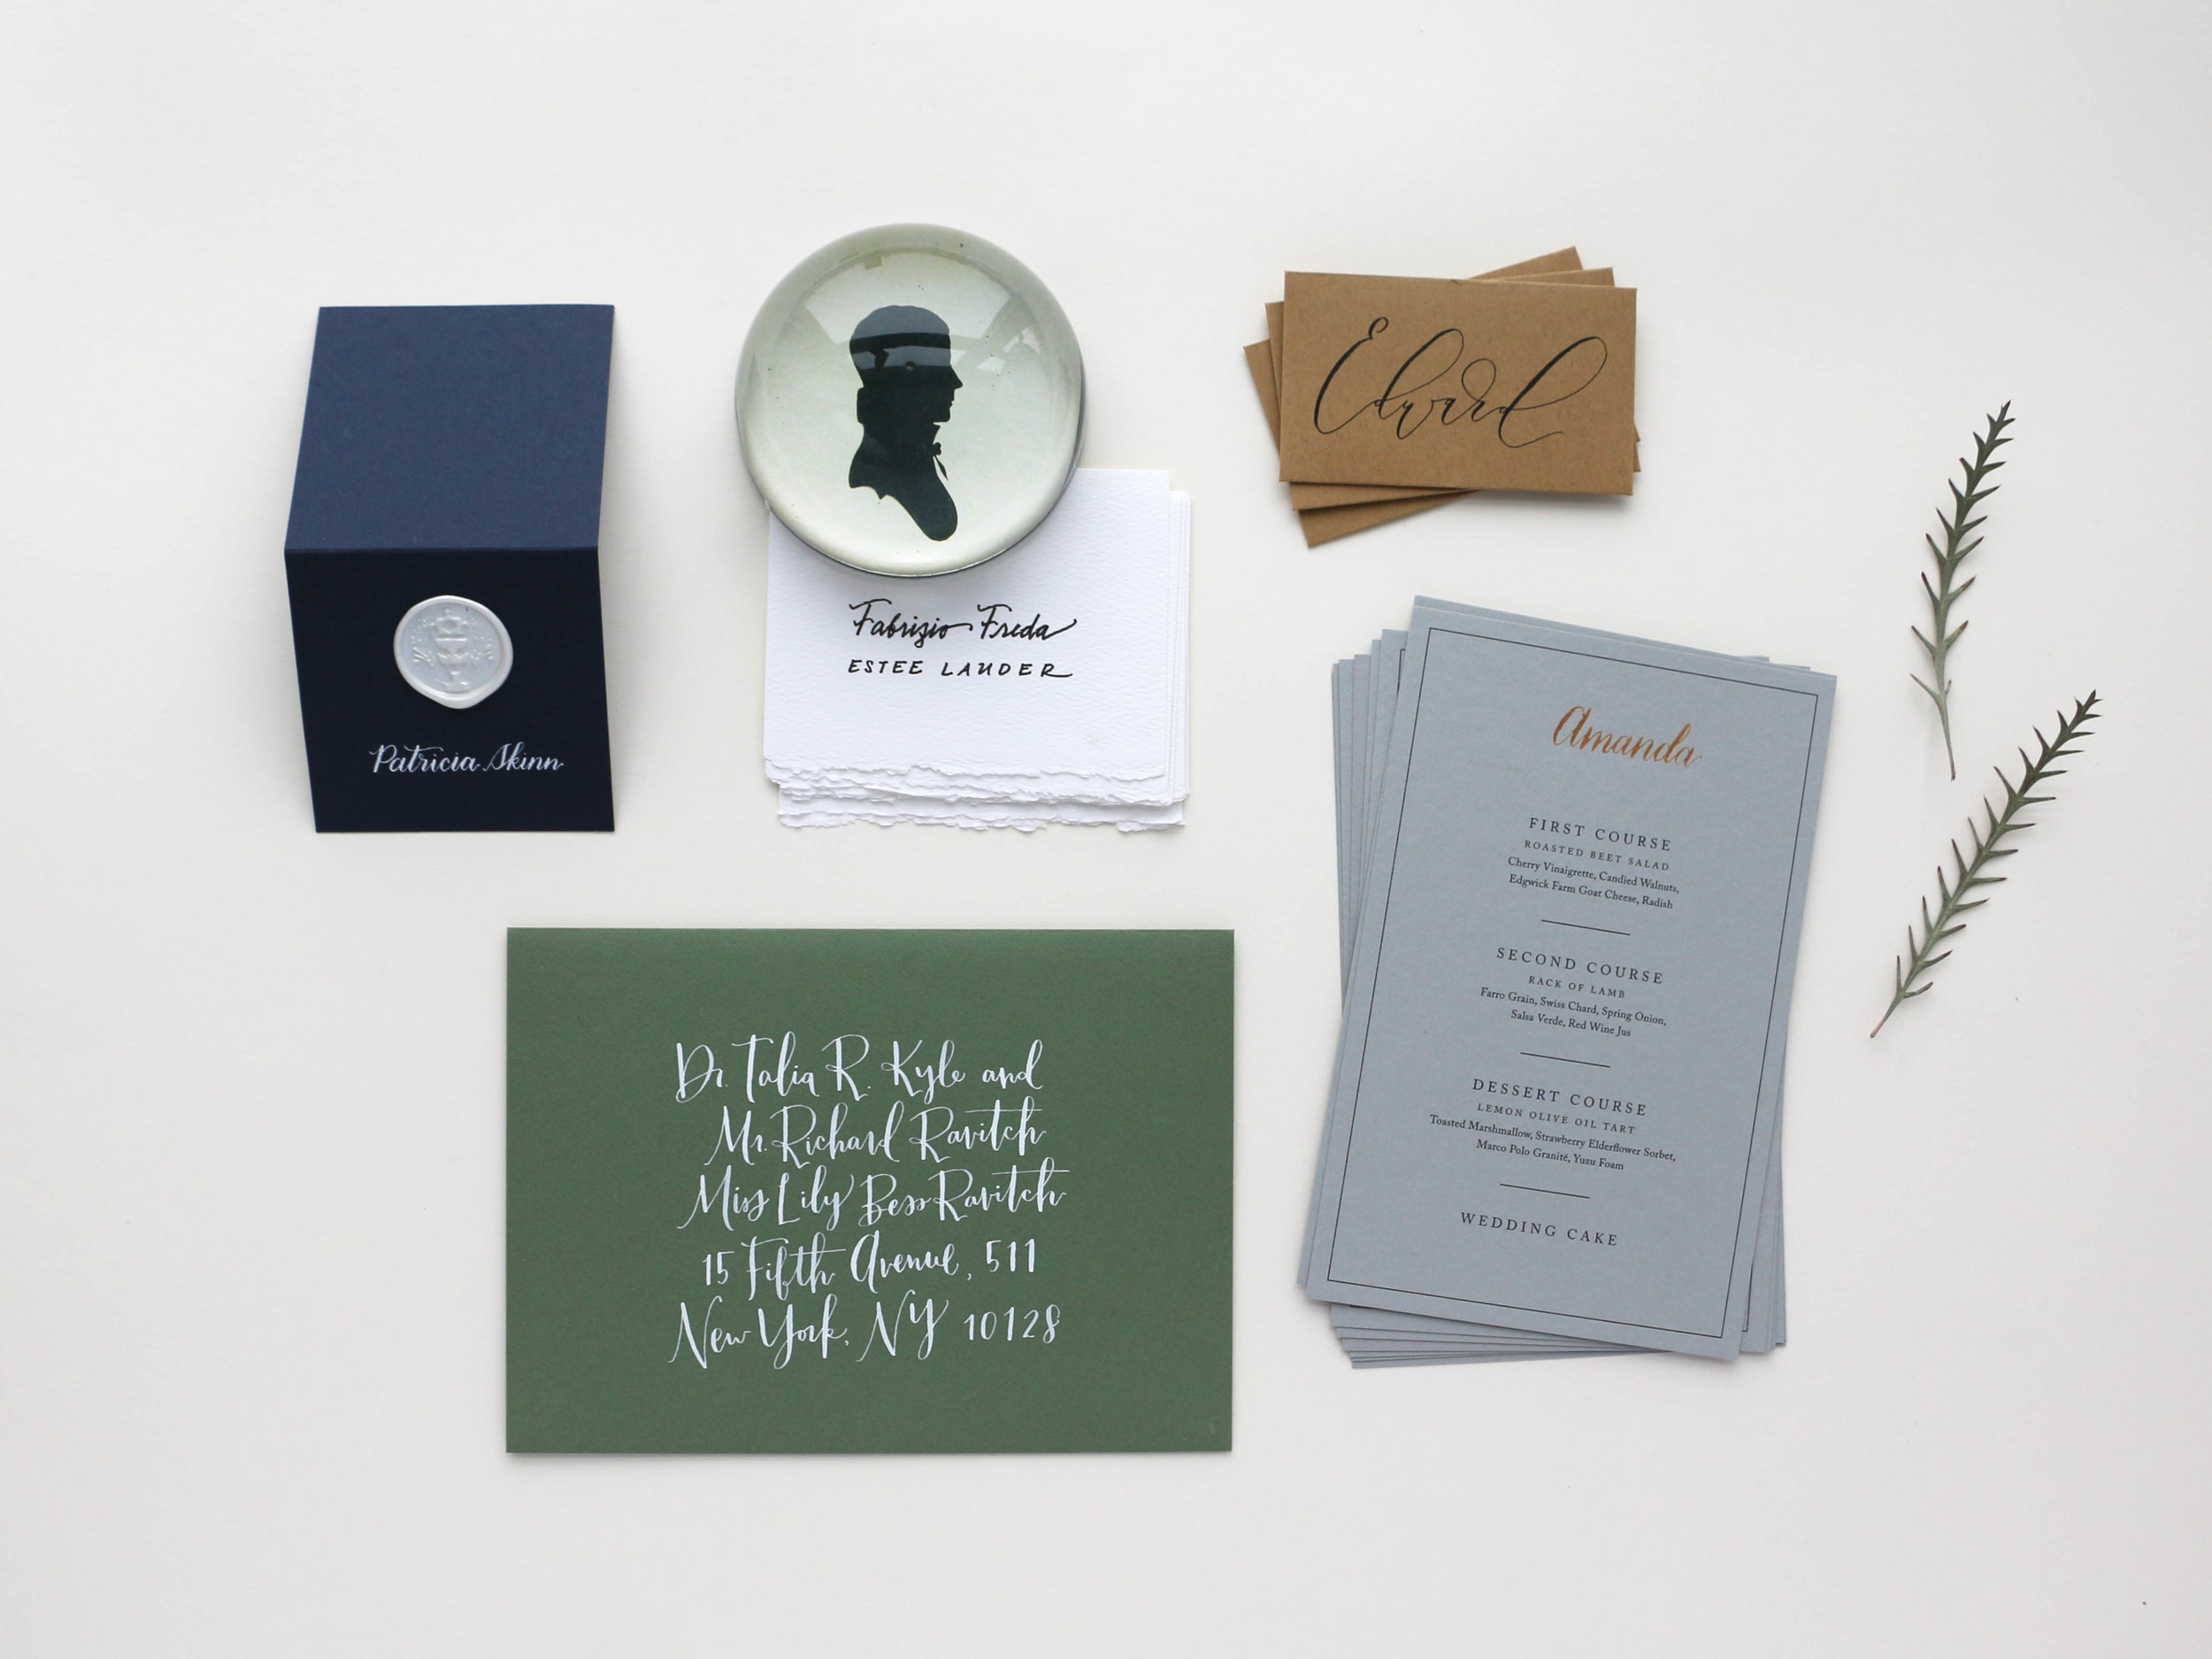 EVENT MATERIALS  Create a memorable experience for your guests by incorporating hand calligraphy and lettering into every aspect of your event, including invitations, envelope addressing, seating and signage, and more.